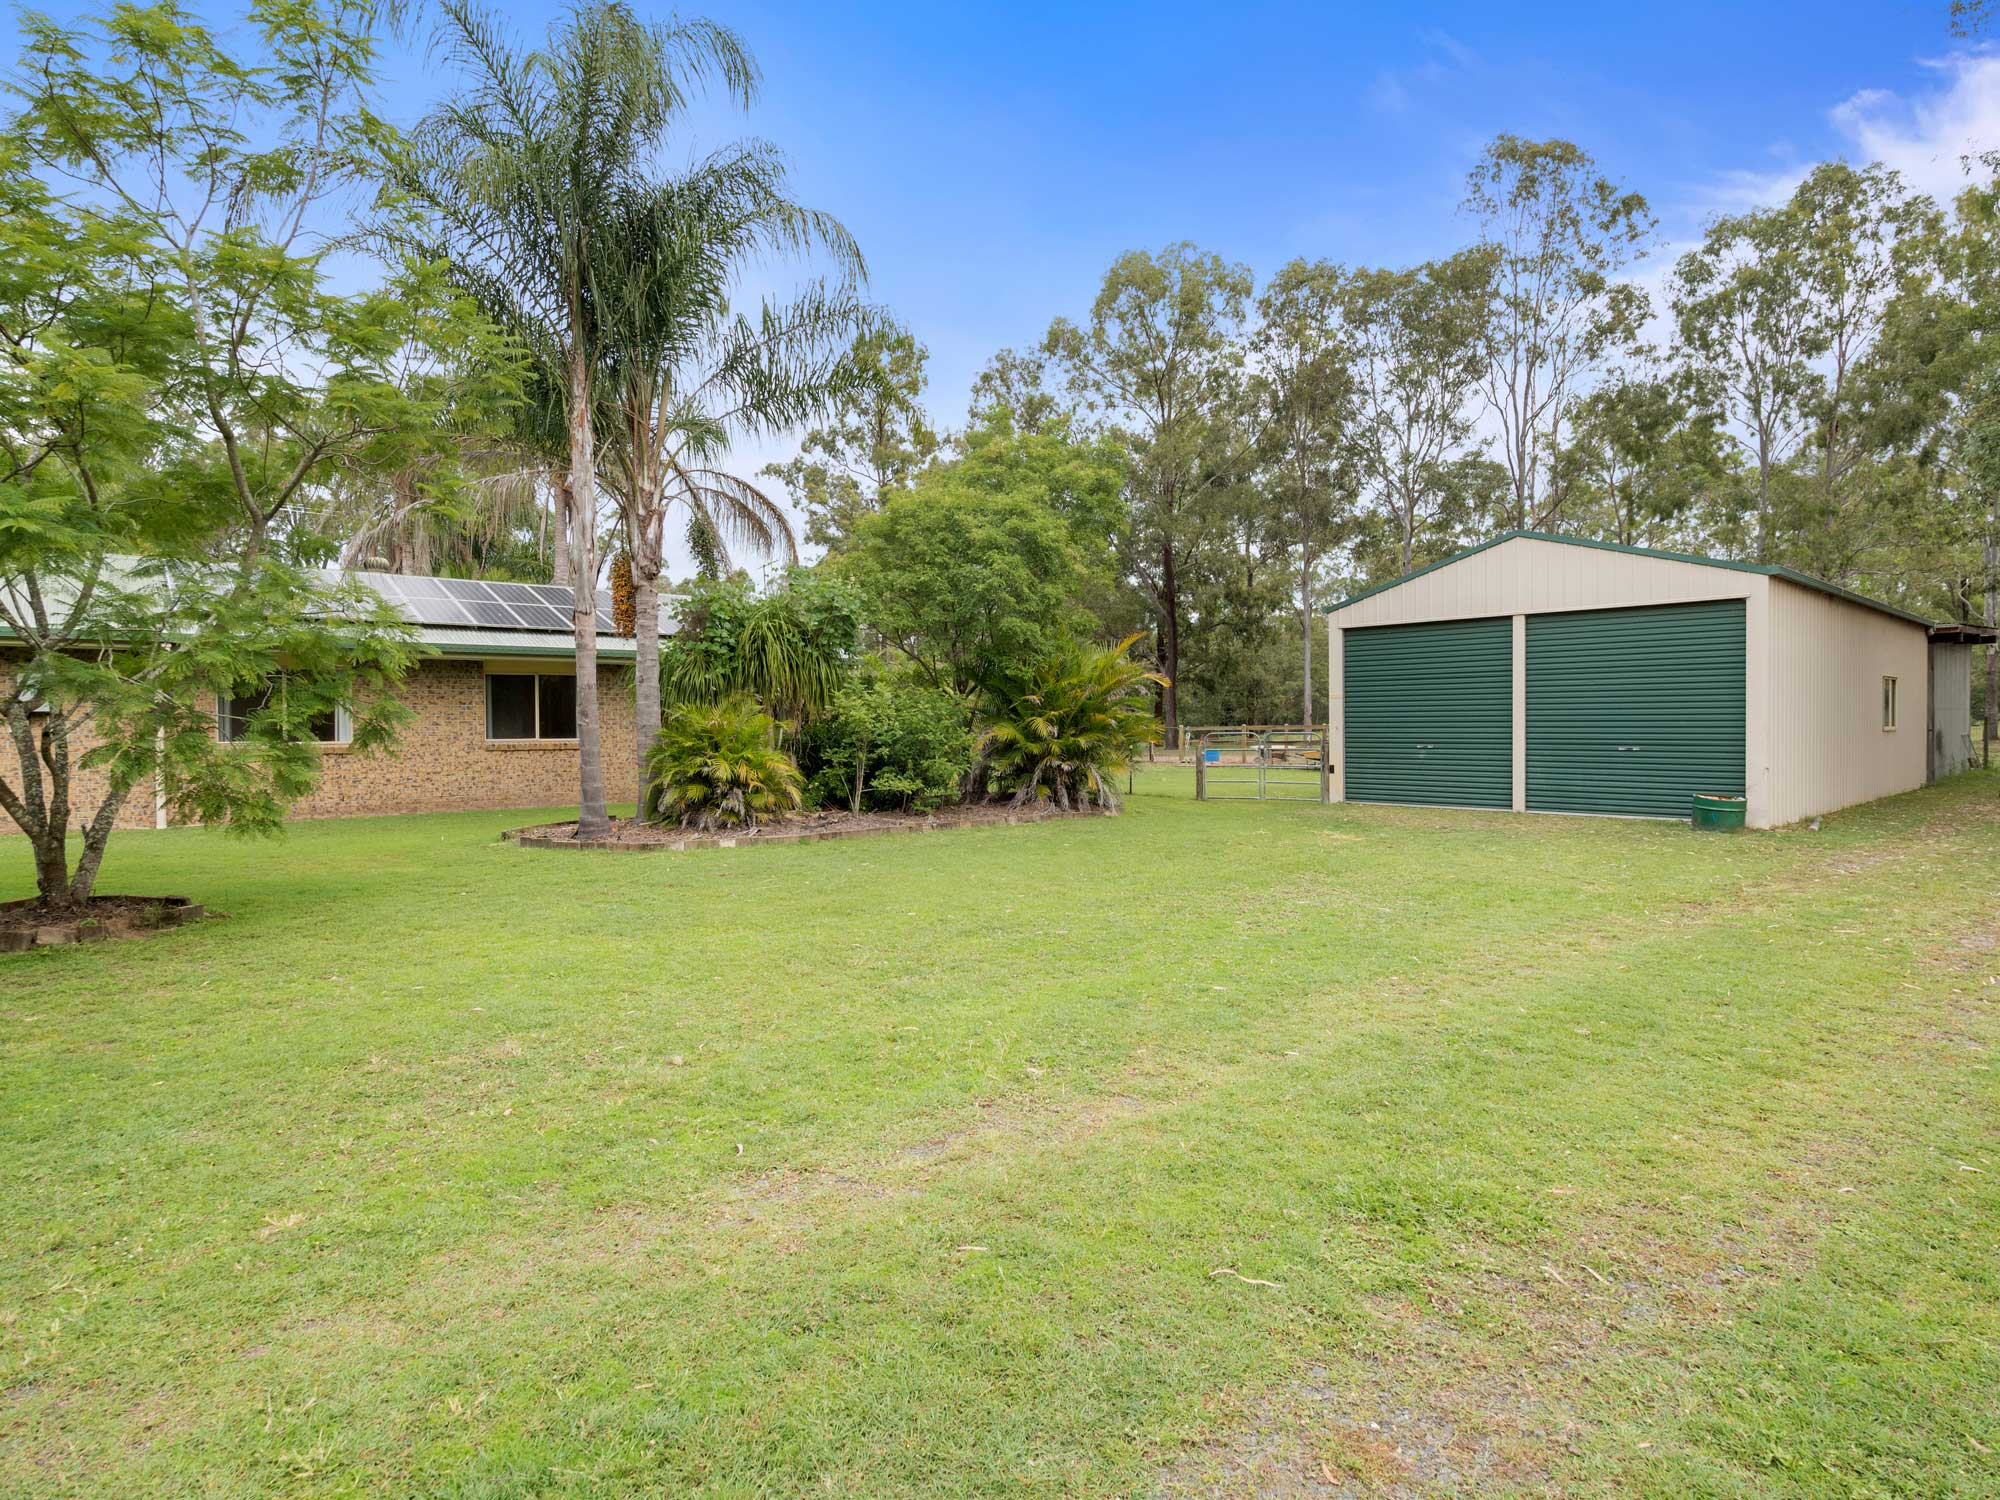 Ground photography at 1033 Teviot Rd Jimboomba for a new real estate listing